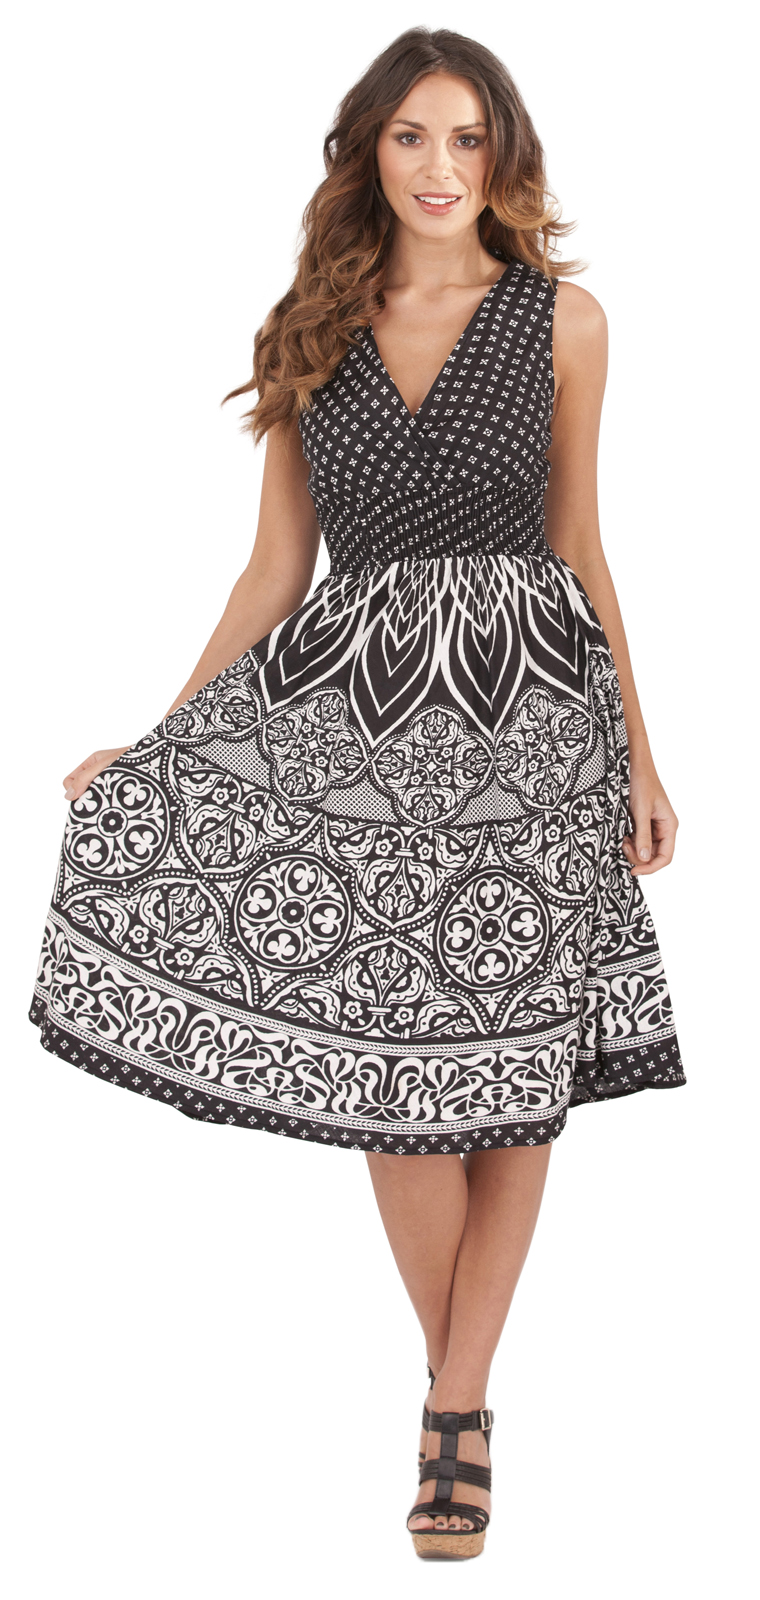 Find great deals on eBay for ladies summer dresses. Shop with confidence.